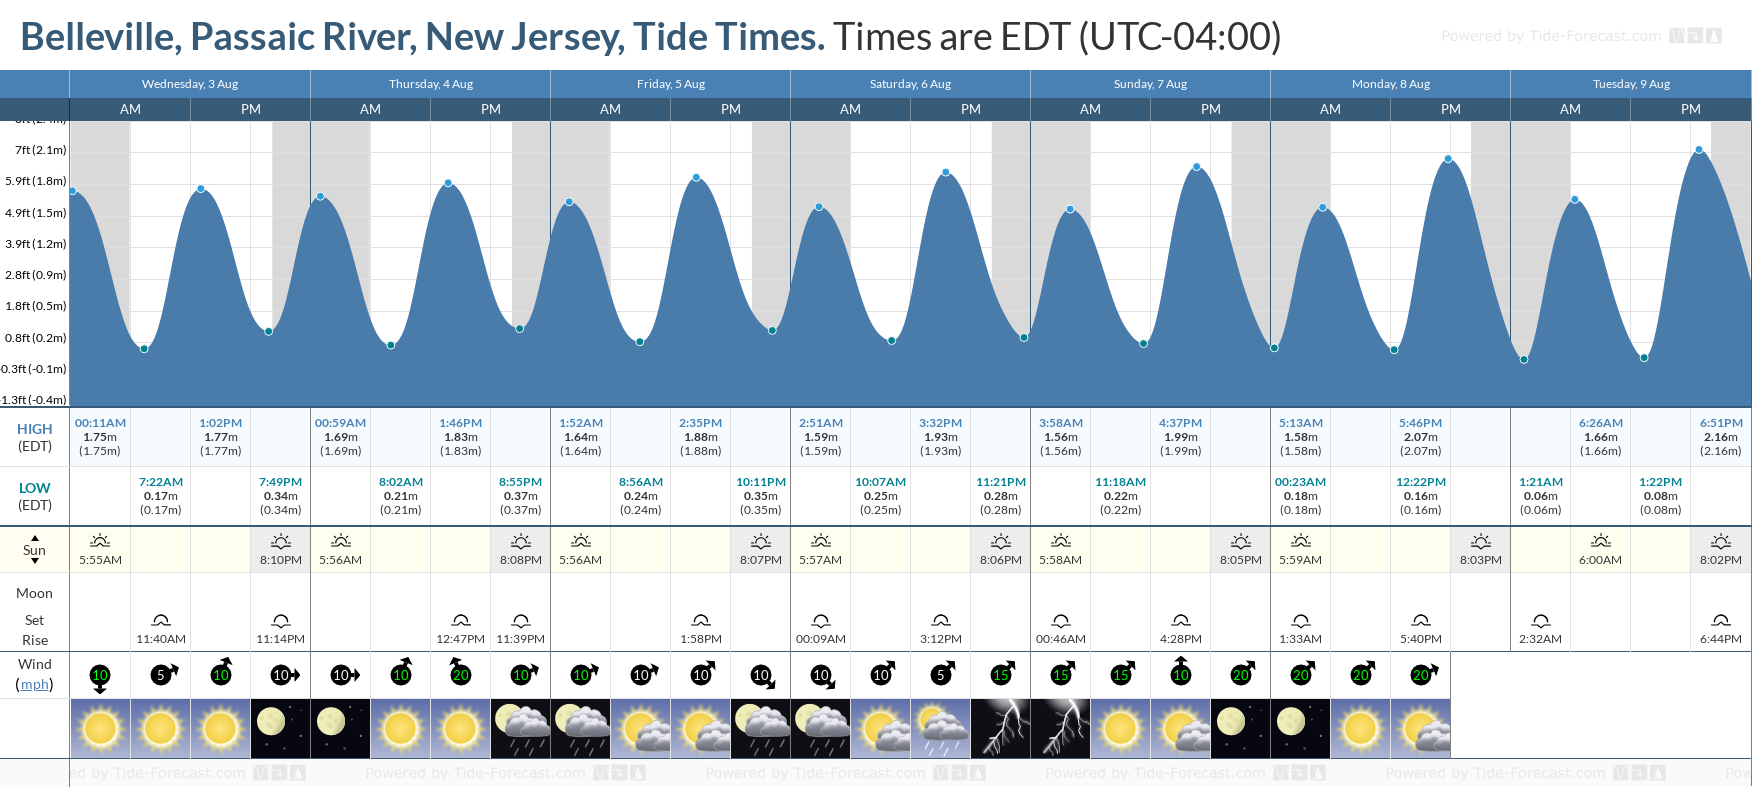 Belleville, Passaic River, New Jersey Tide Chart including high and low tide tide times for the next 7 days